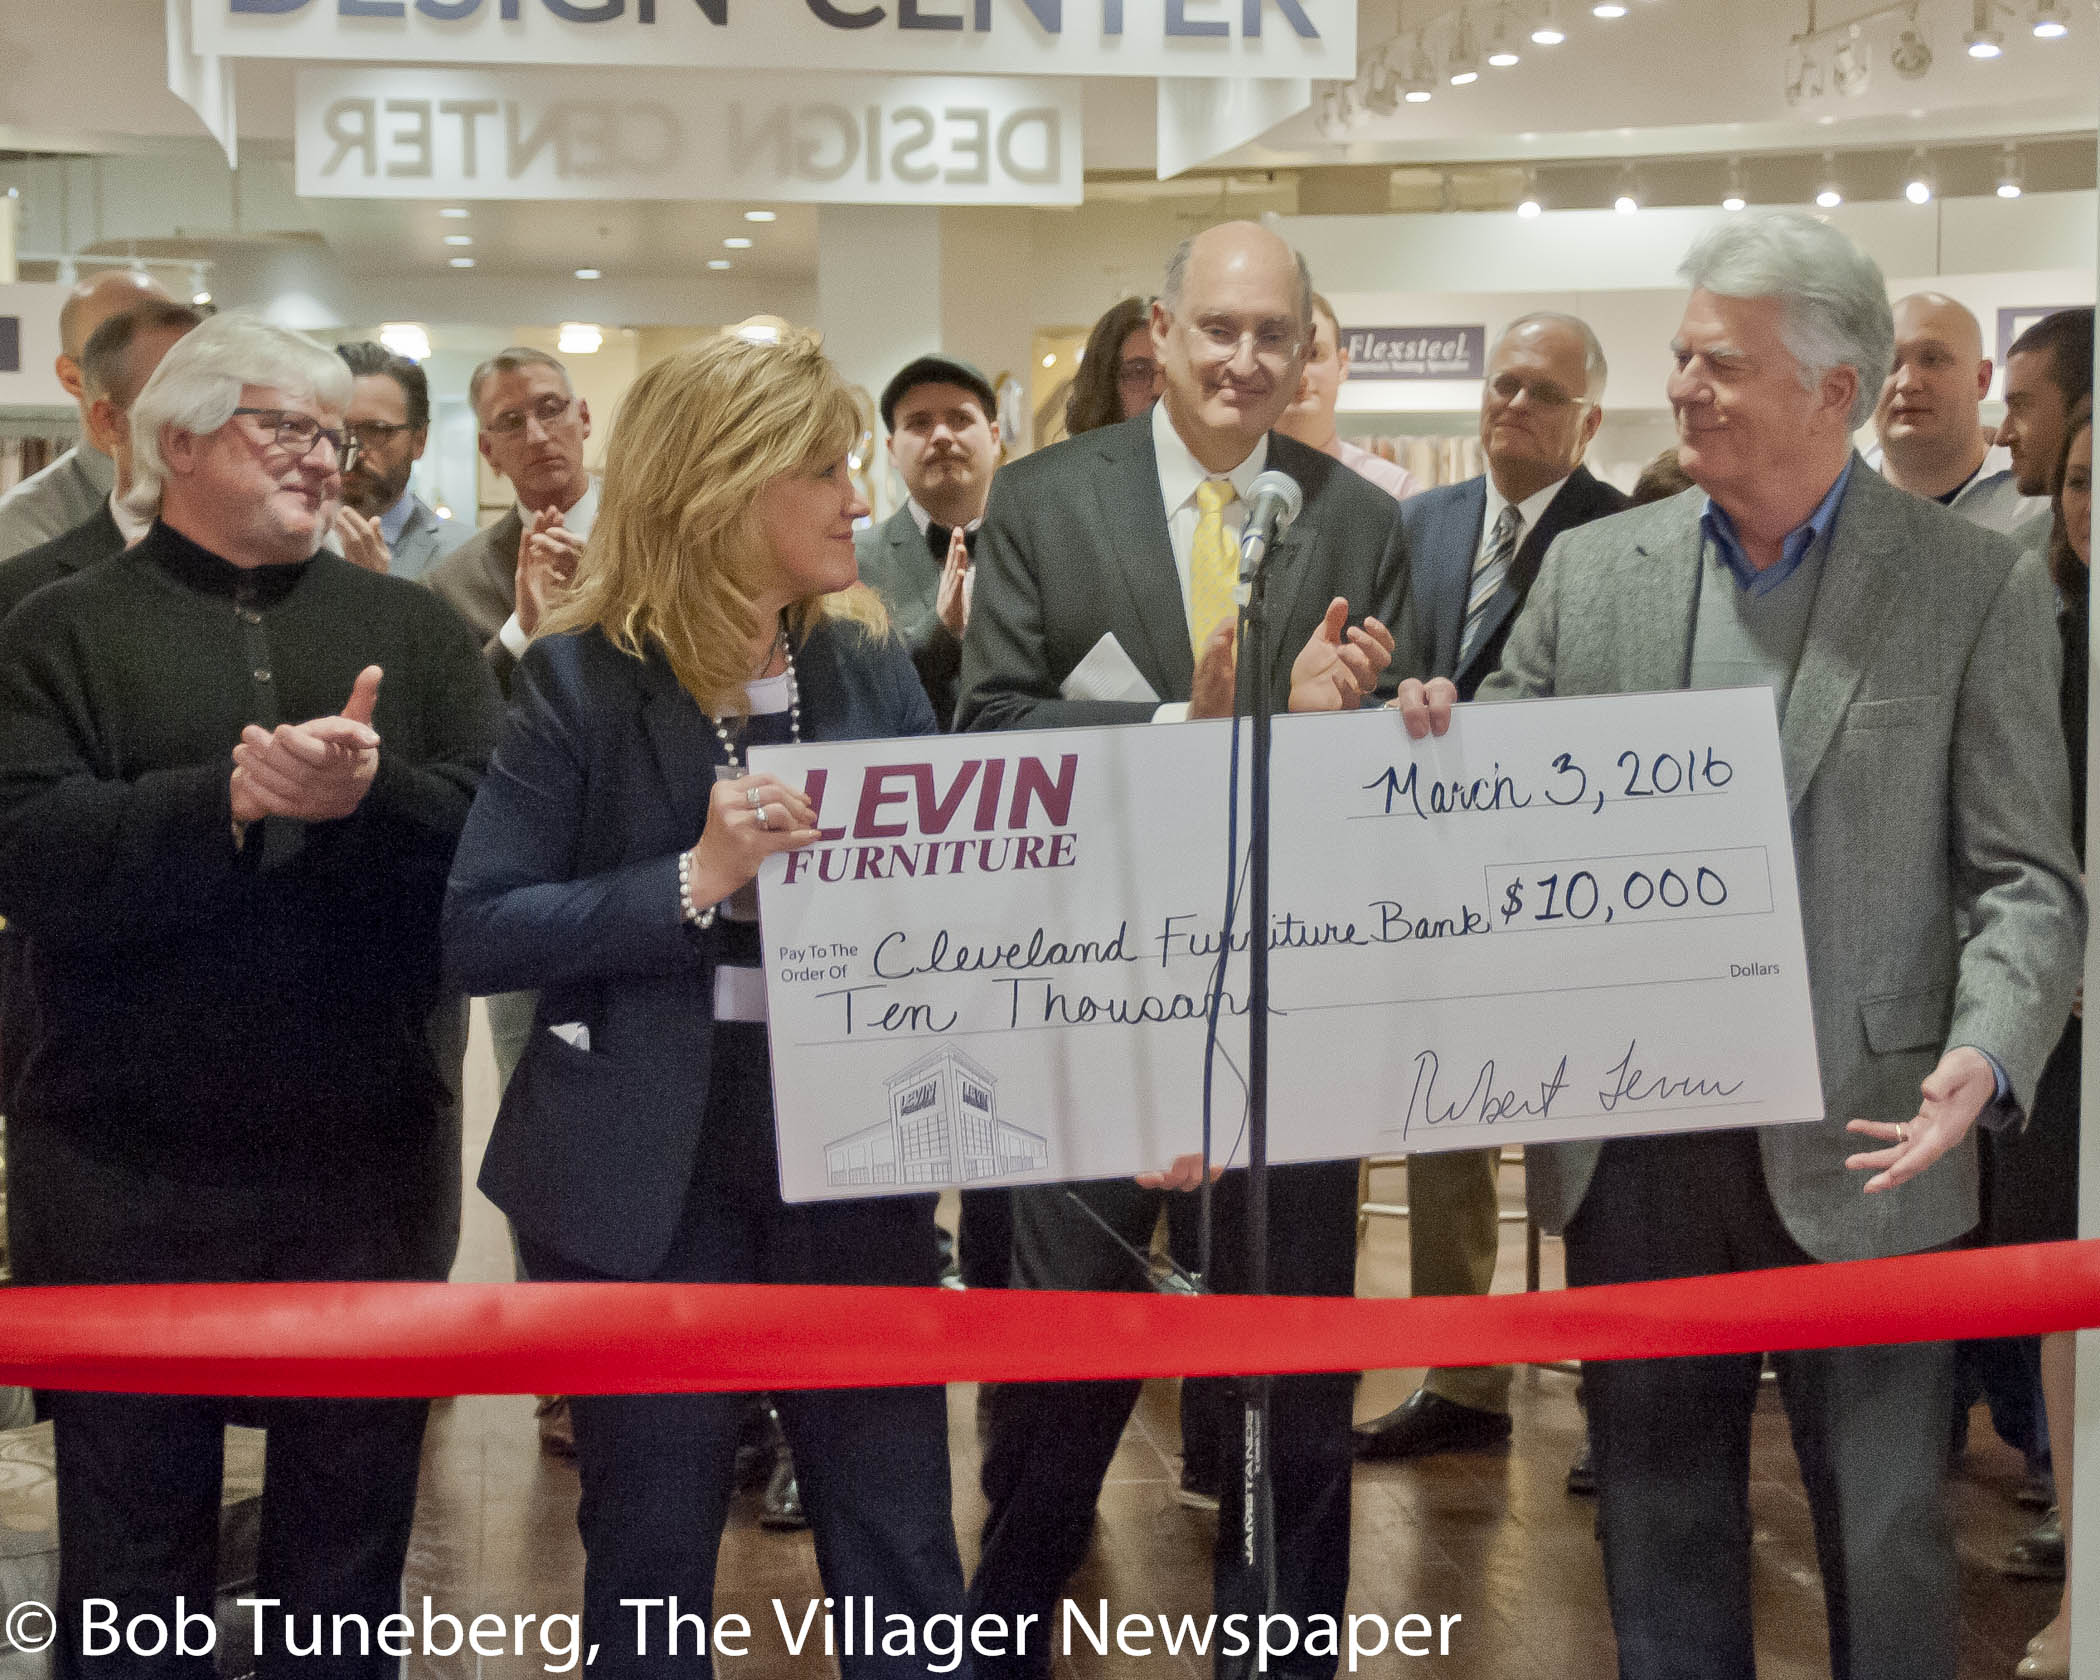 The Grand Opening Of Levin Furniture In Avon This Month Was A Celebration  For The Community As Well As Charitable Organizations Supported By The  Store.